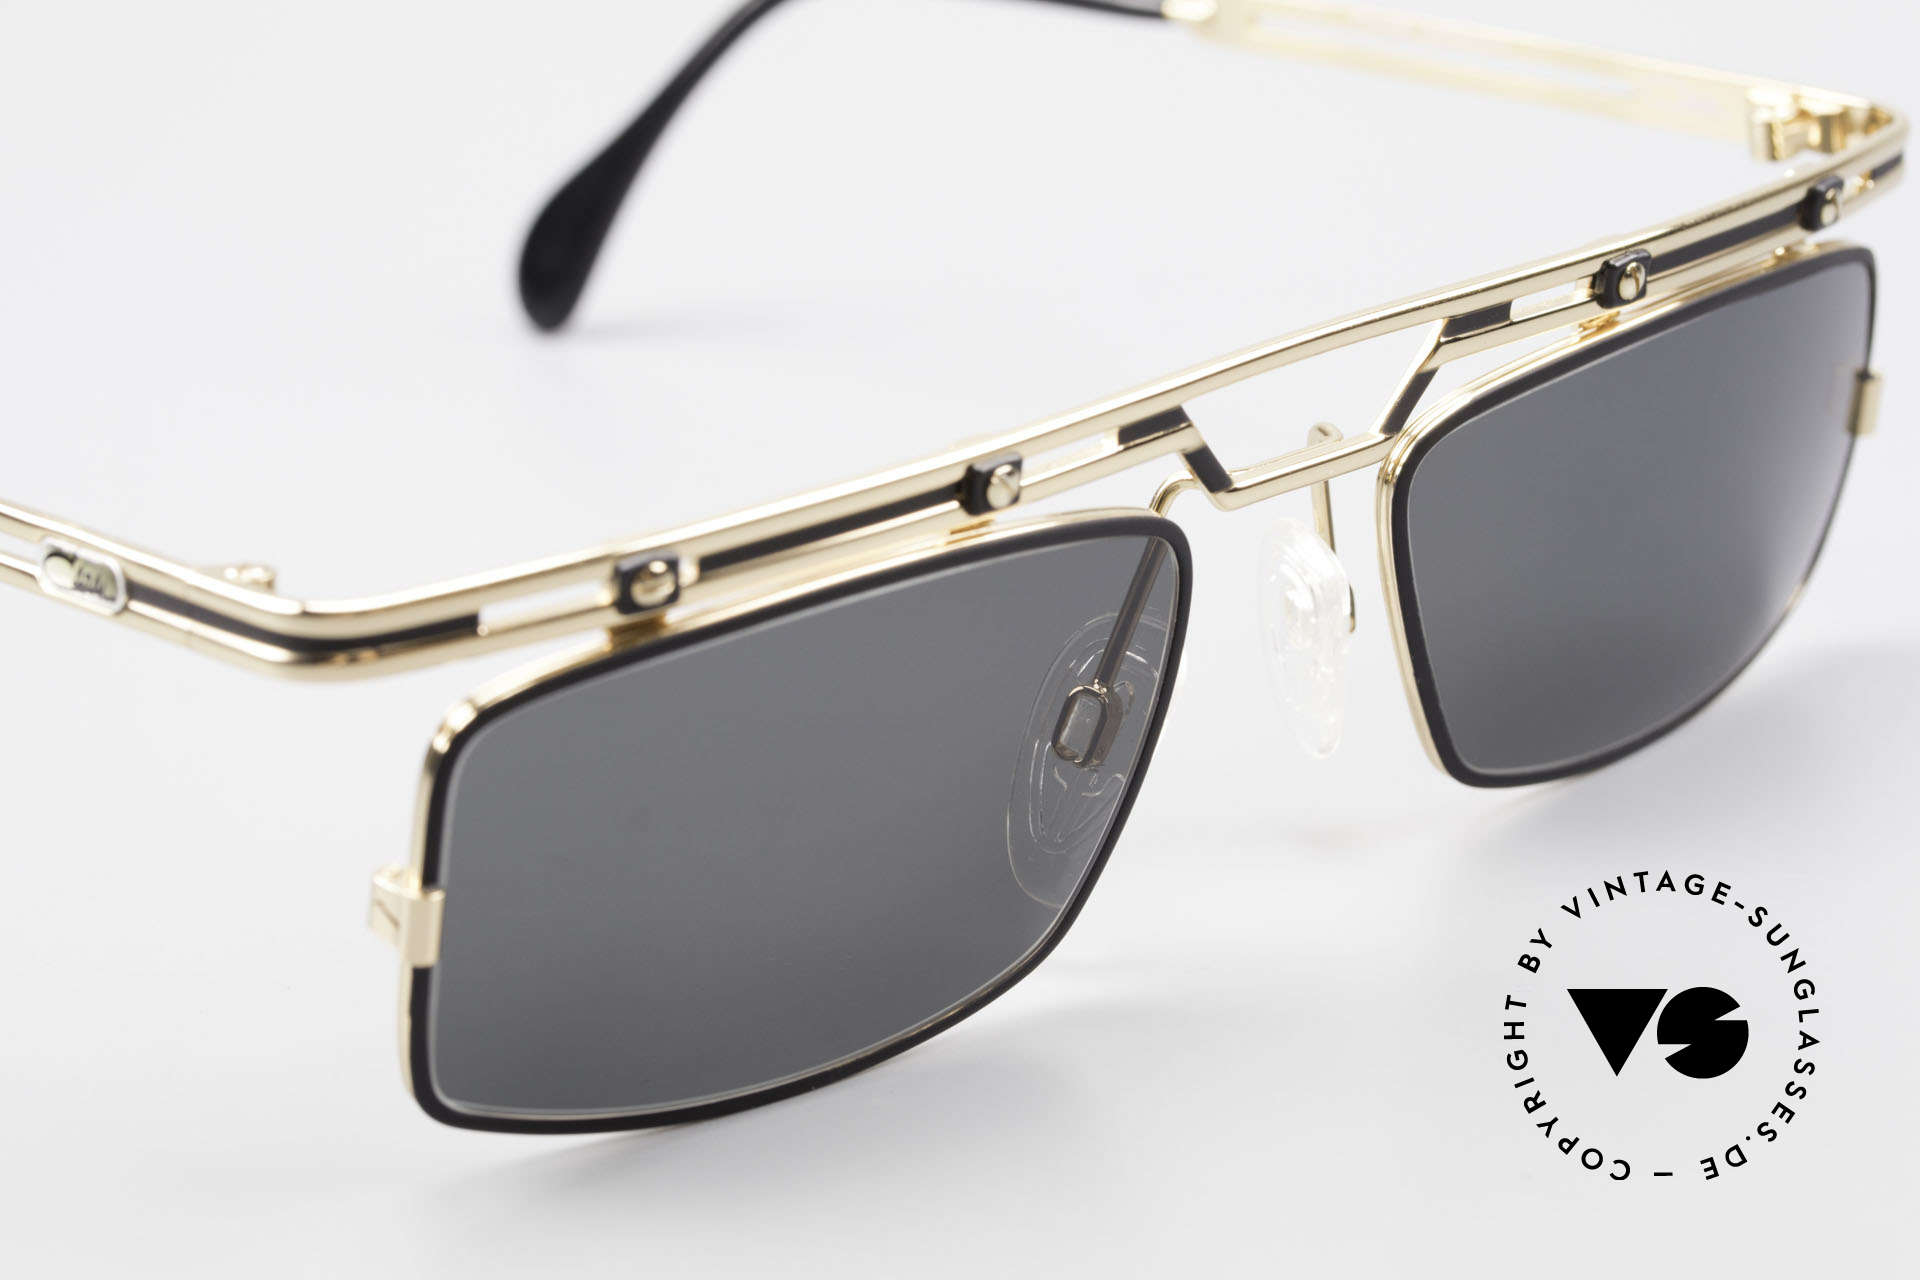 Cazal 975 Square Vintage Sunglasses 90's, never used (like all our rare vintage CAZAL eyewear), Made for Men